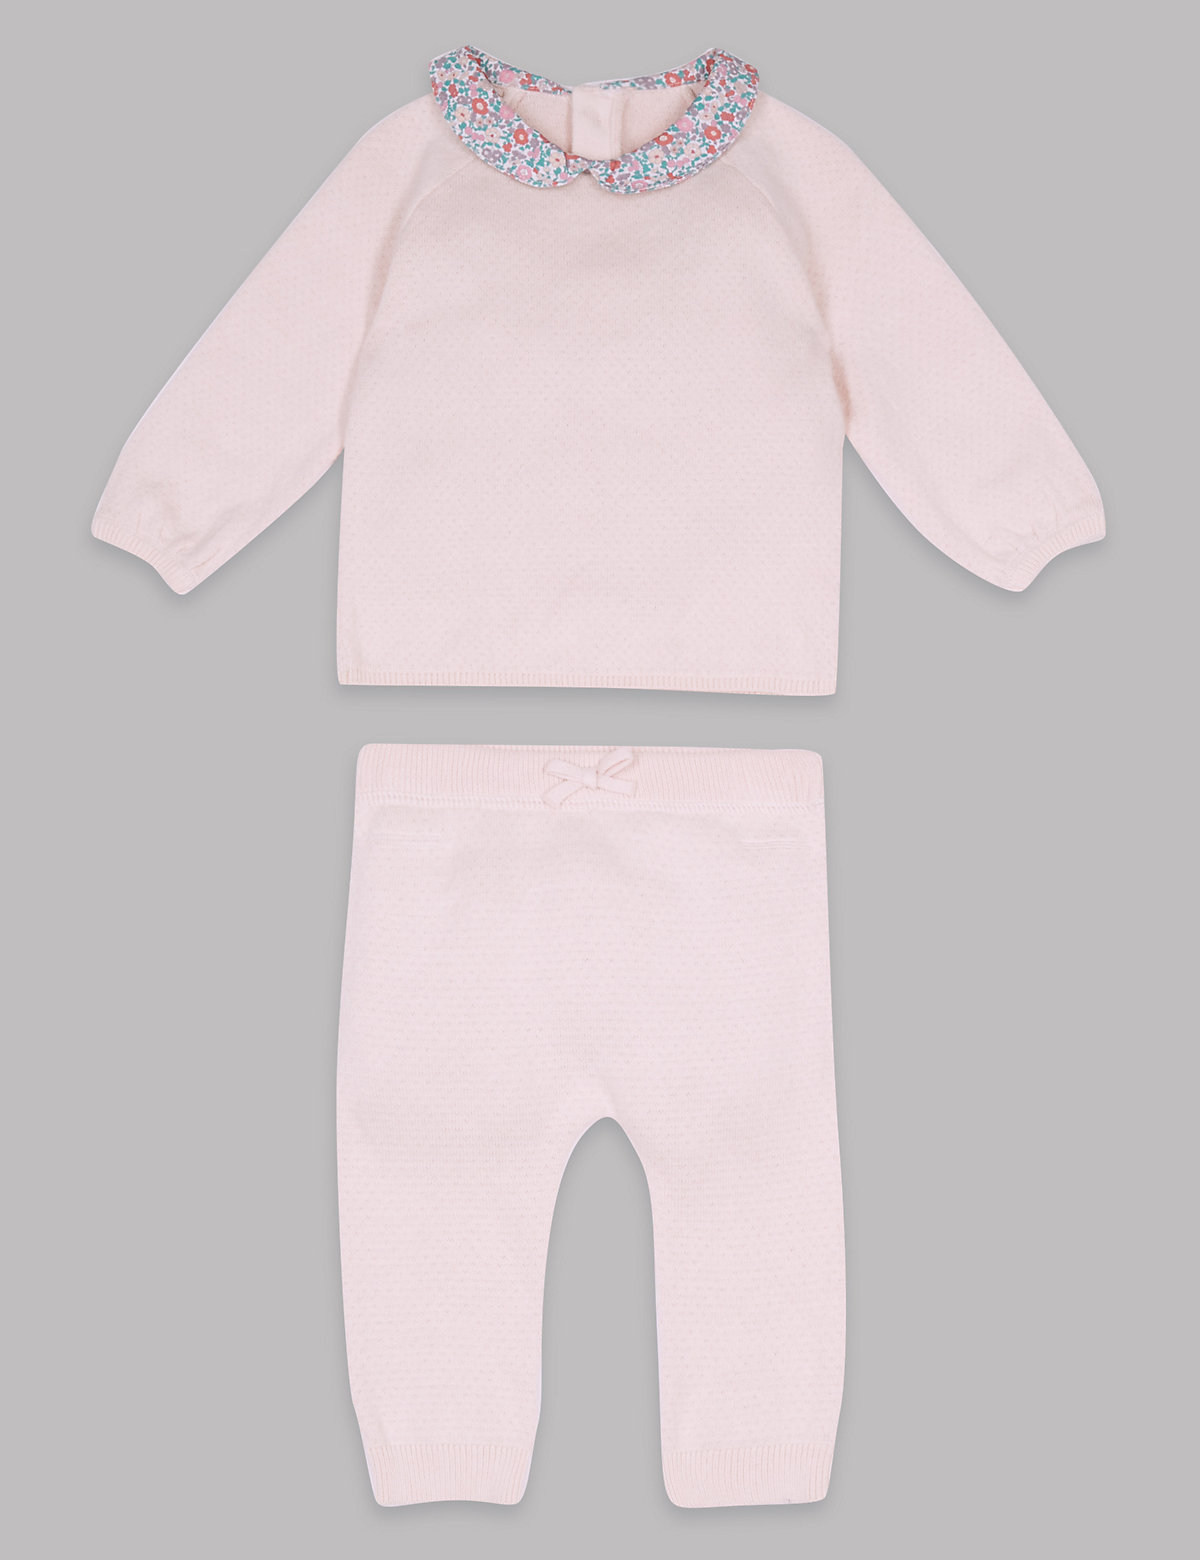 Autograph 2 Piece Knitted Top & Bottom Outfit